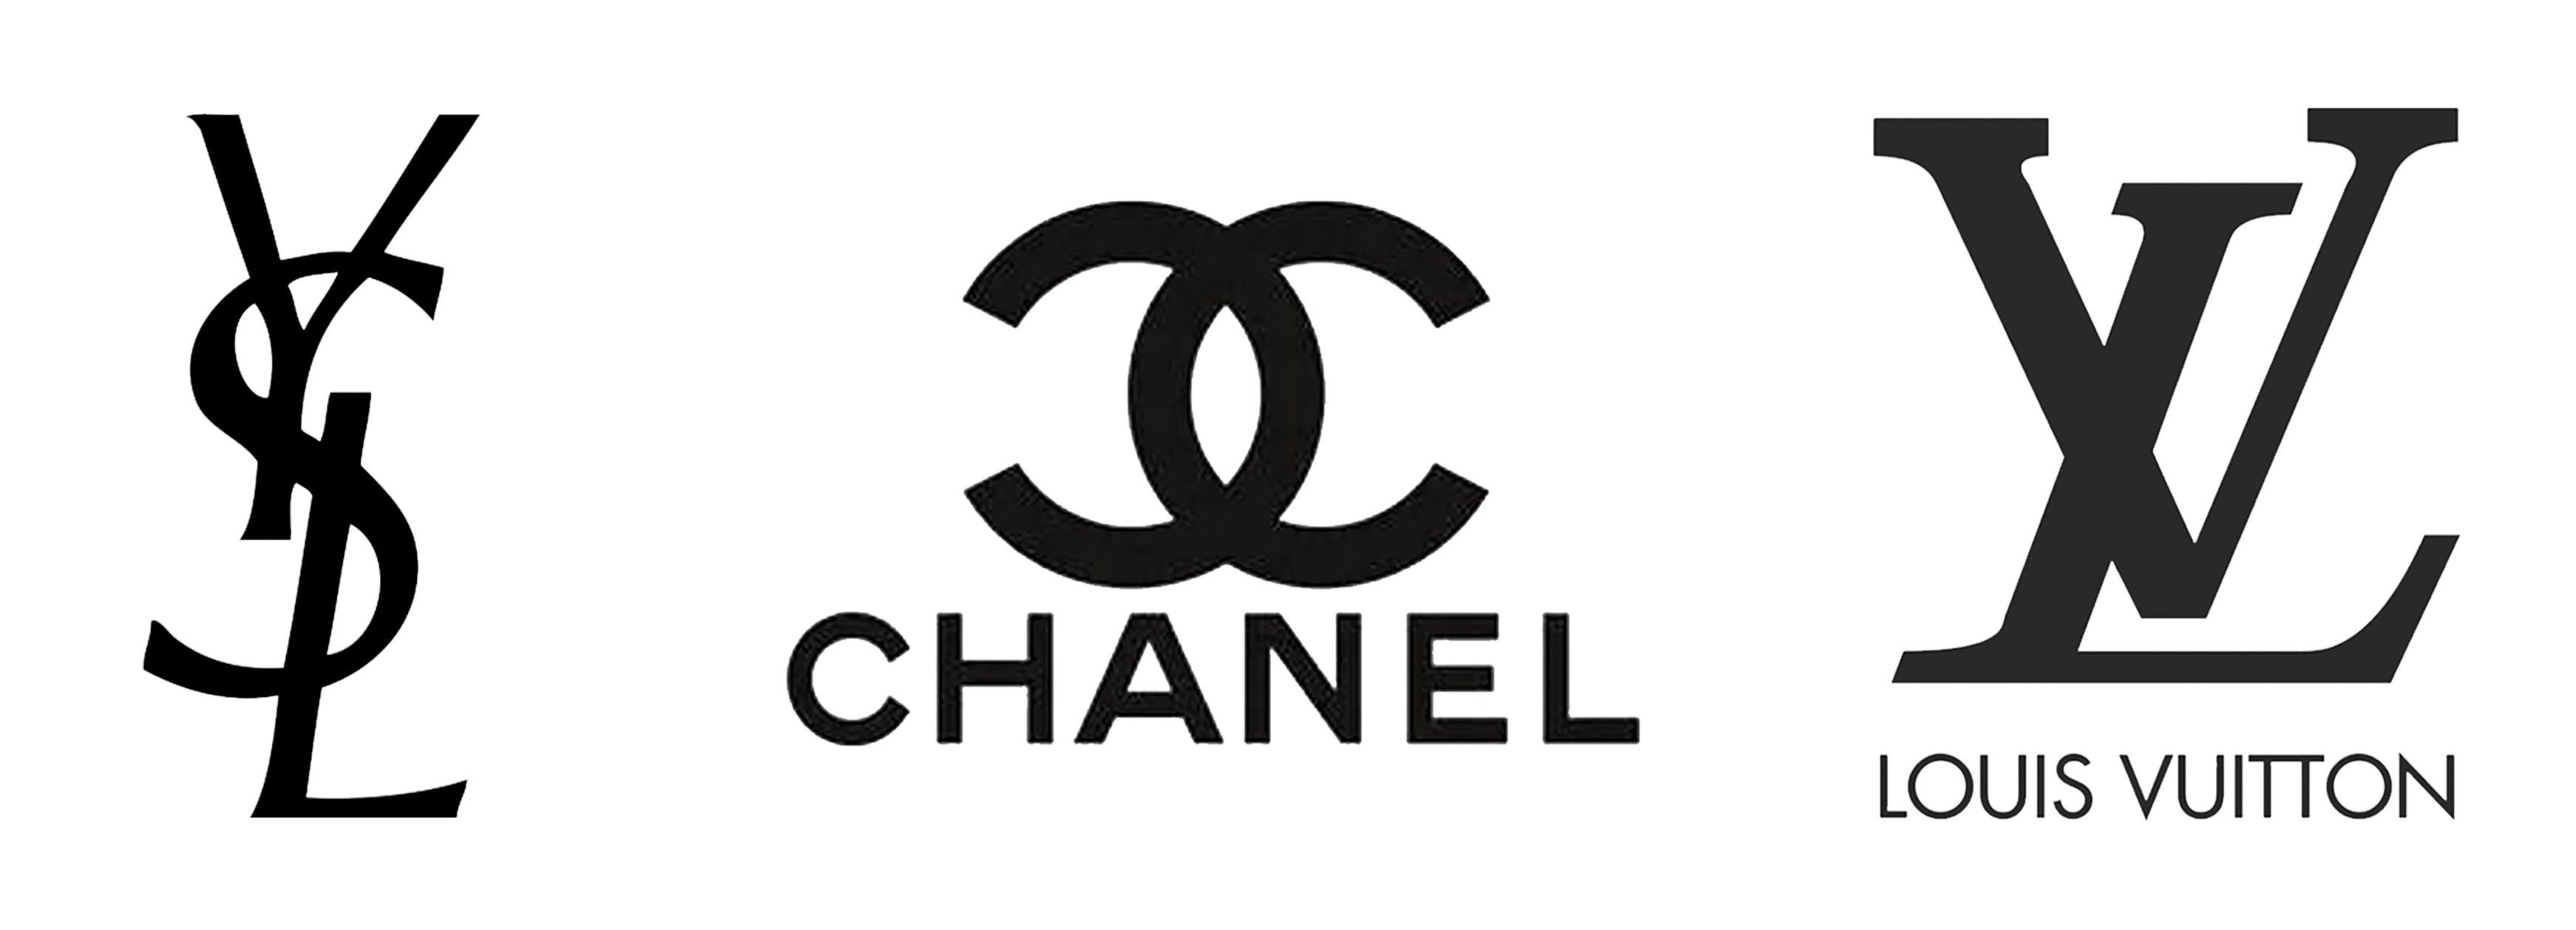 63+ Chanel Logo Wallpapers on WallpaperPlay Chanel